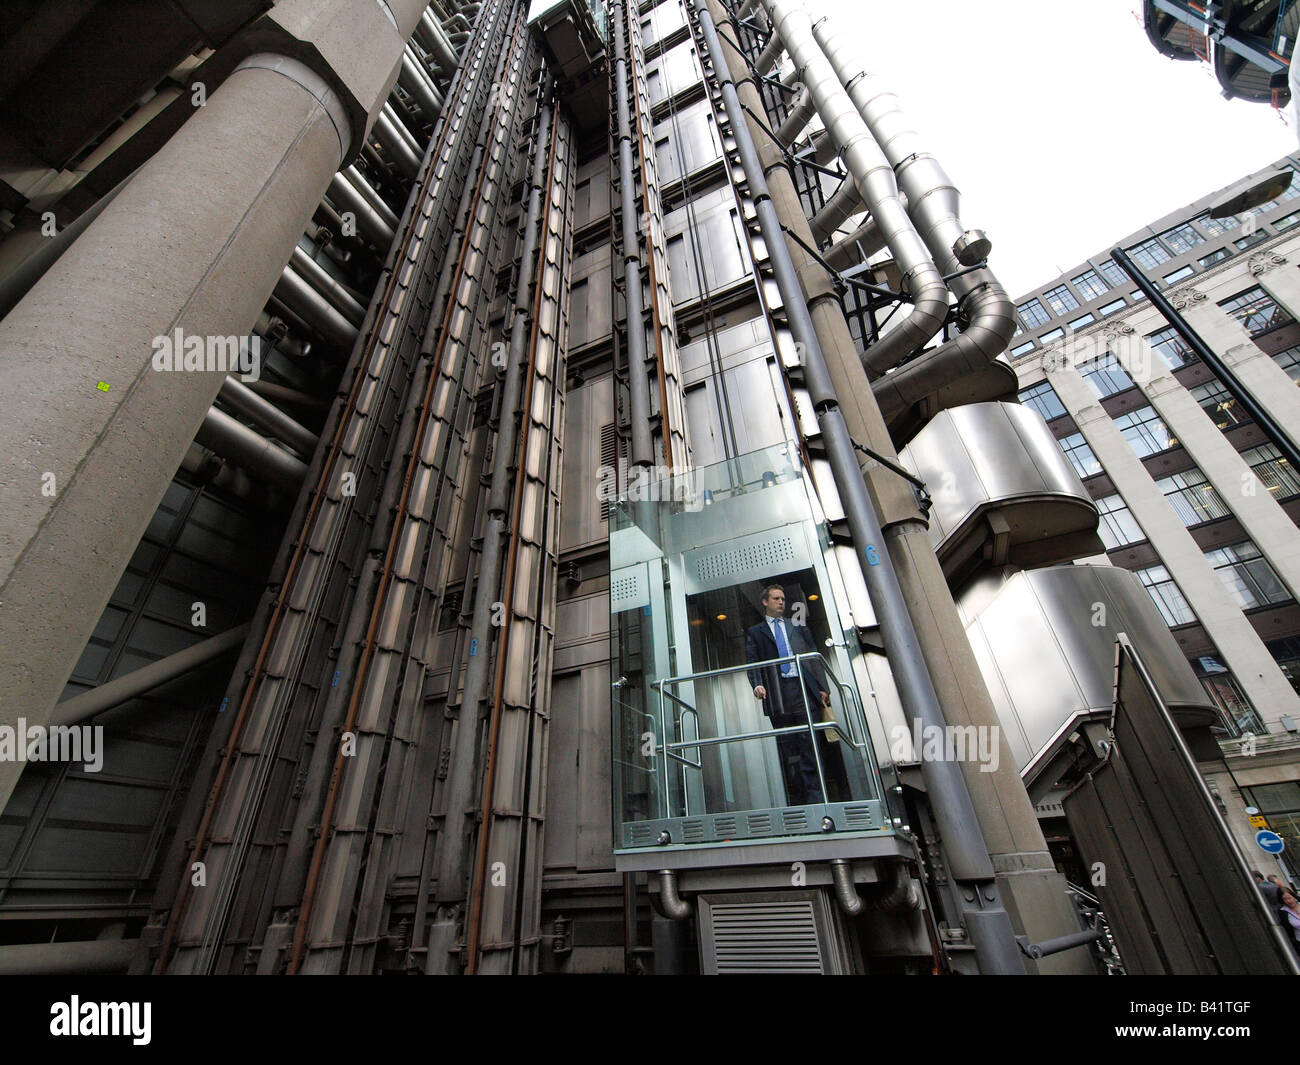 Hotel With Hoist In London